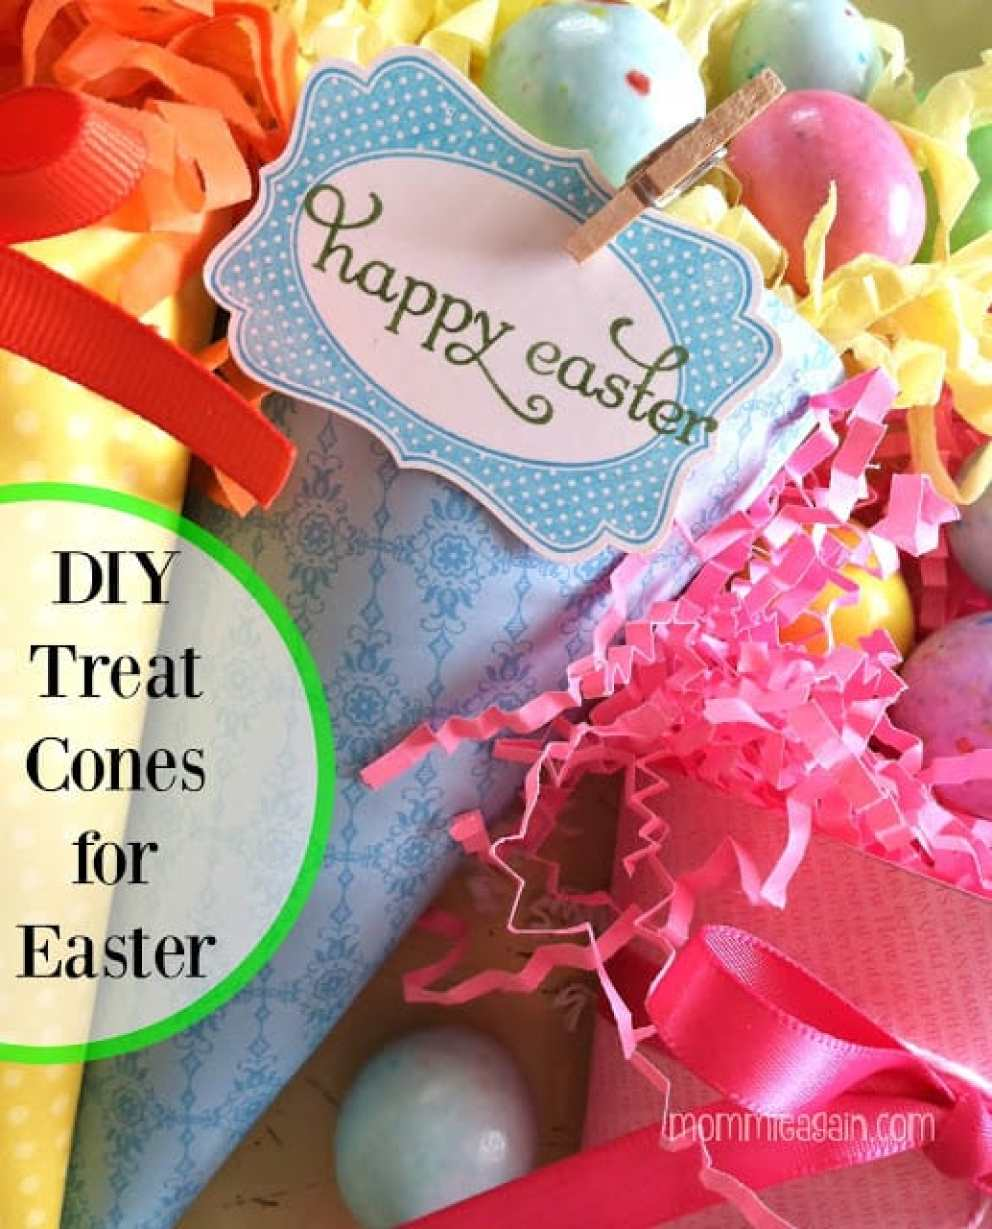 Easy DIY Easter Treat Cones